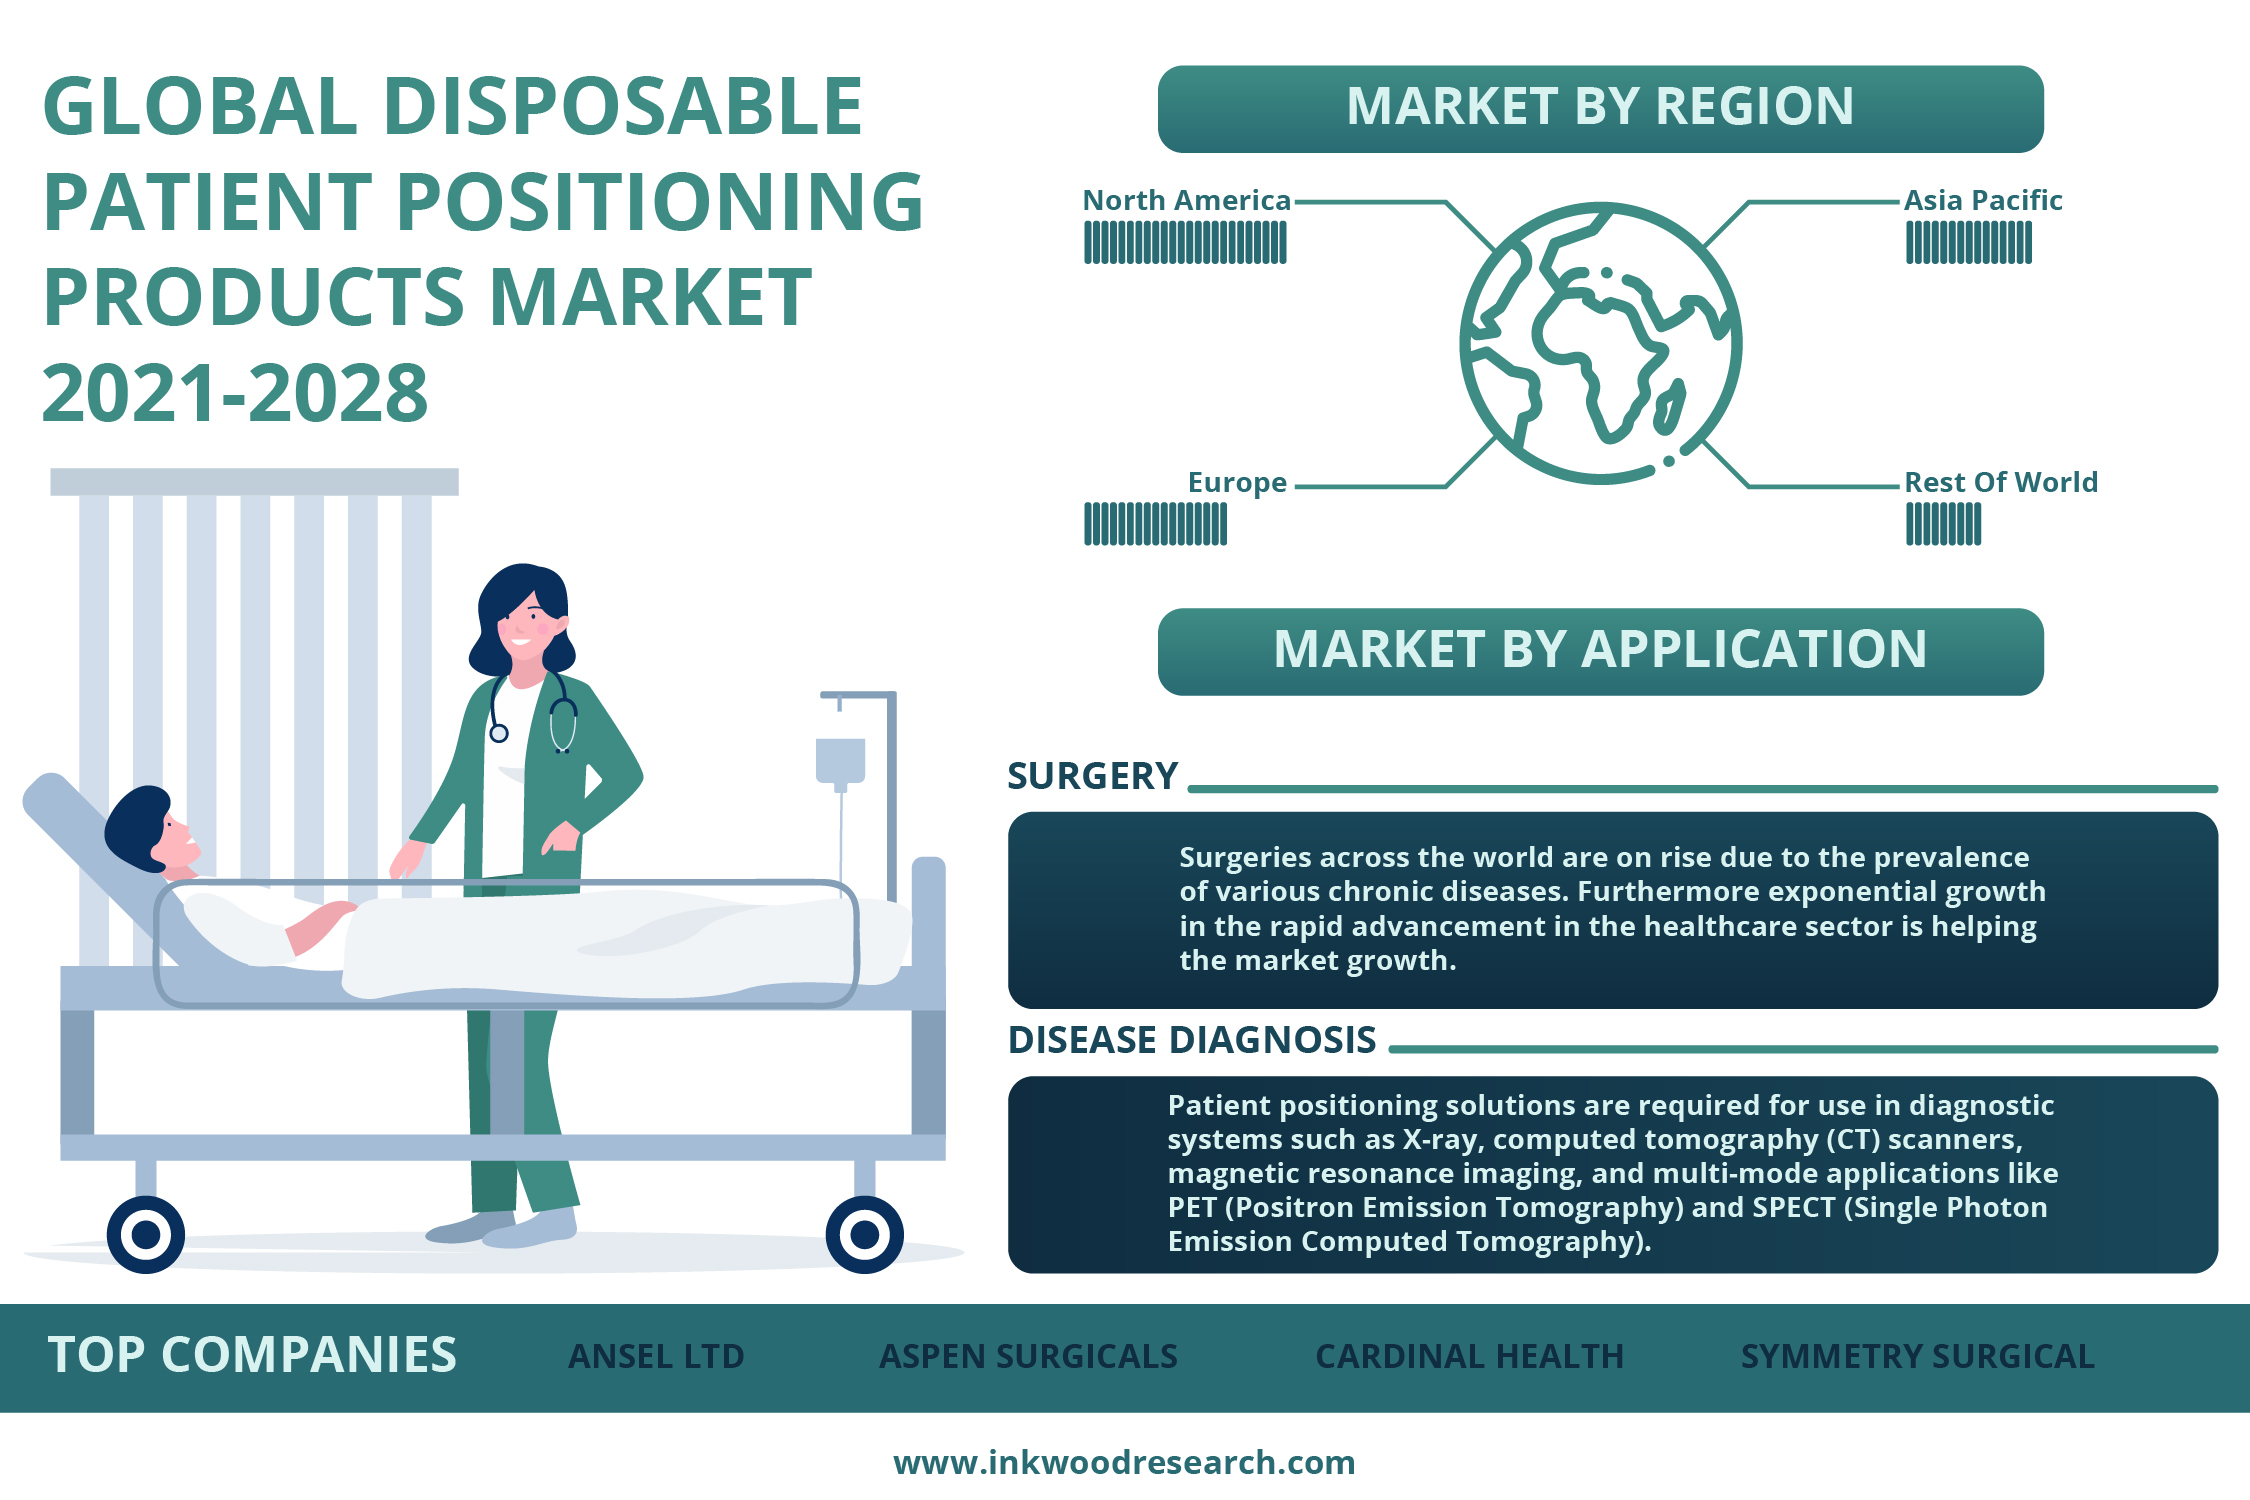 Investments in Healthcare is driving the Global Disposable Patient Positioning Products Market